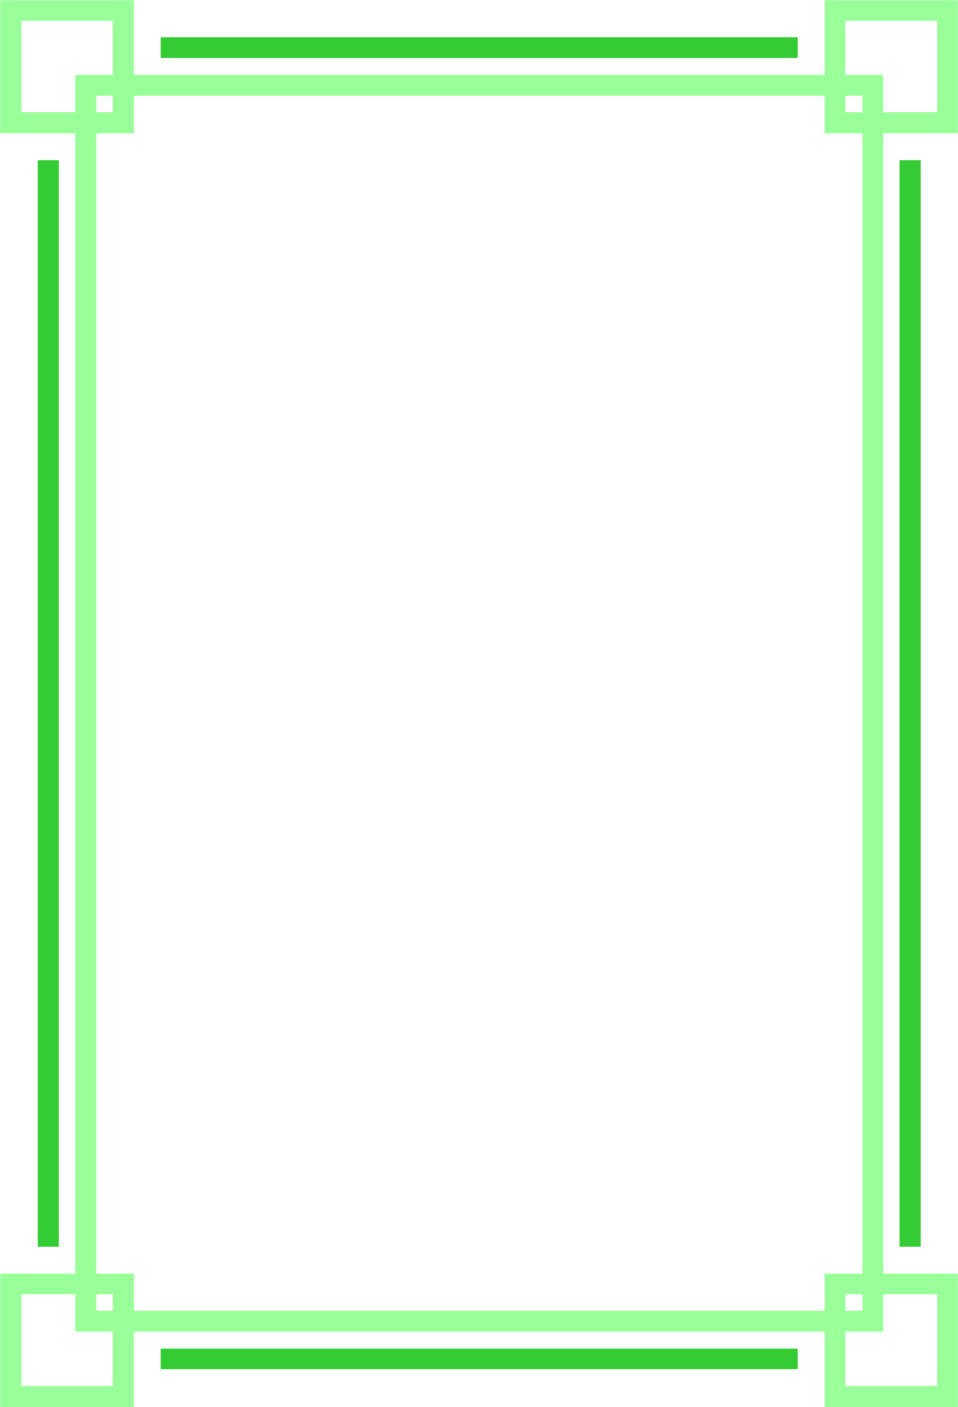 Illustration of a blank green frame border : Free Stock Photo